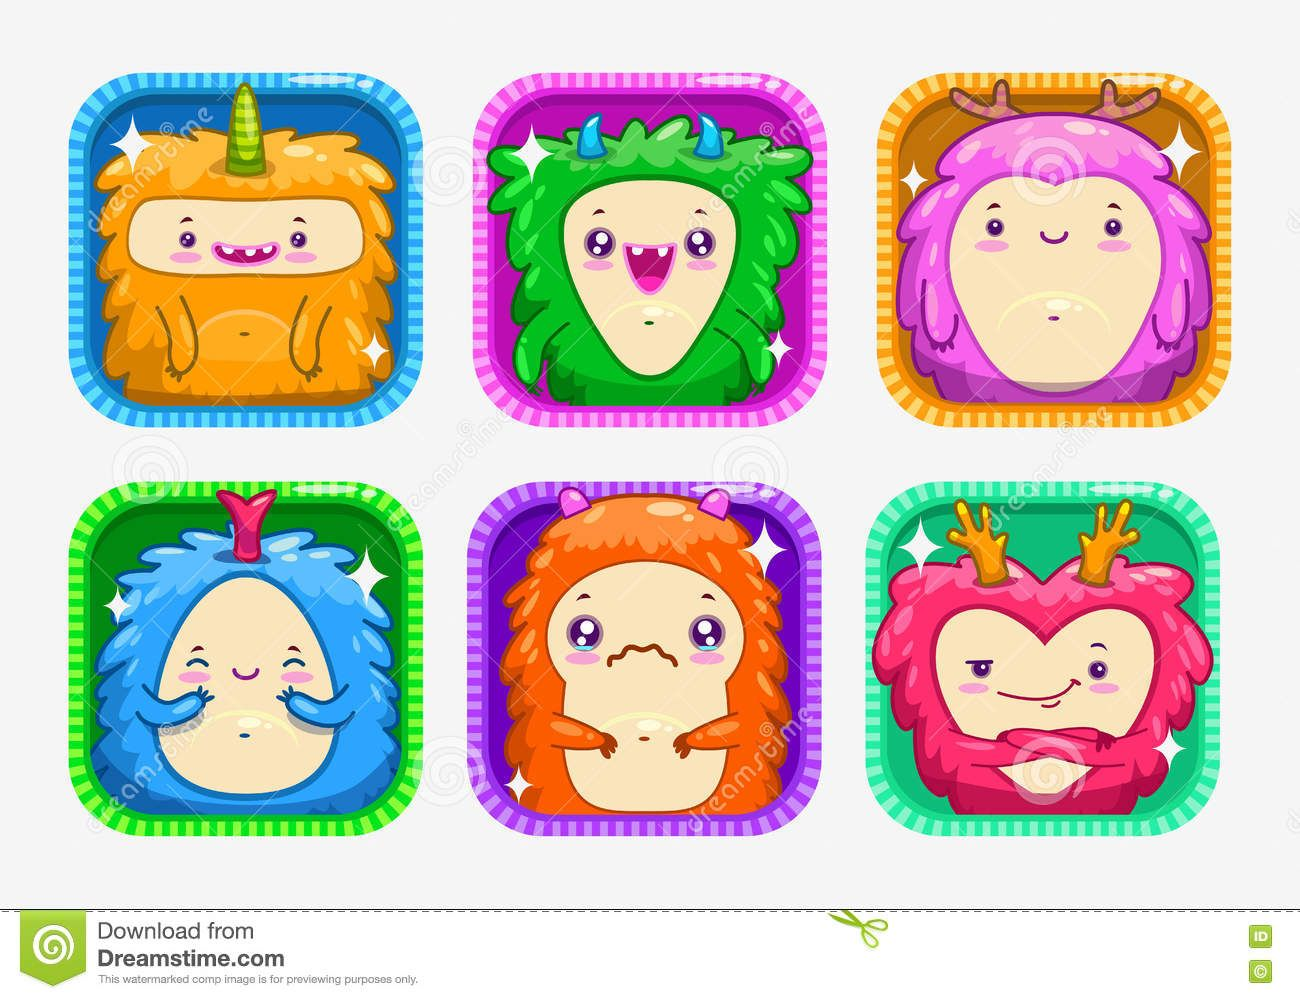 Image result for app icons for kids' Kids app, App icon